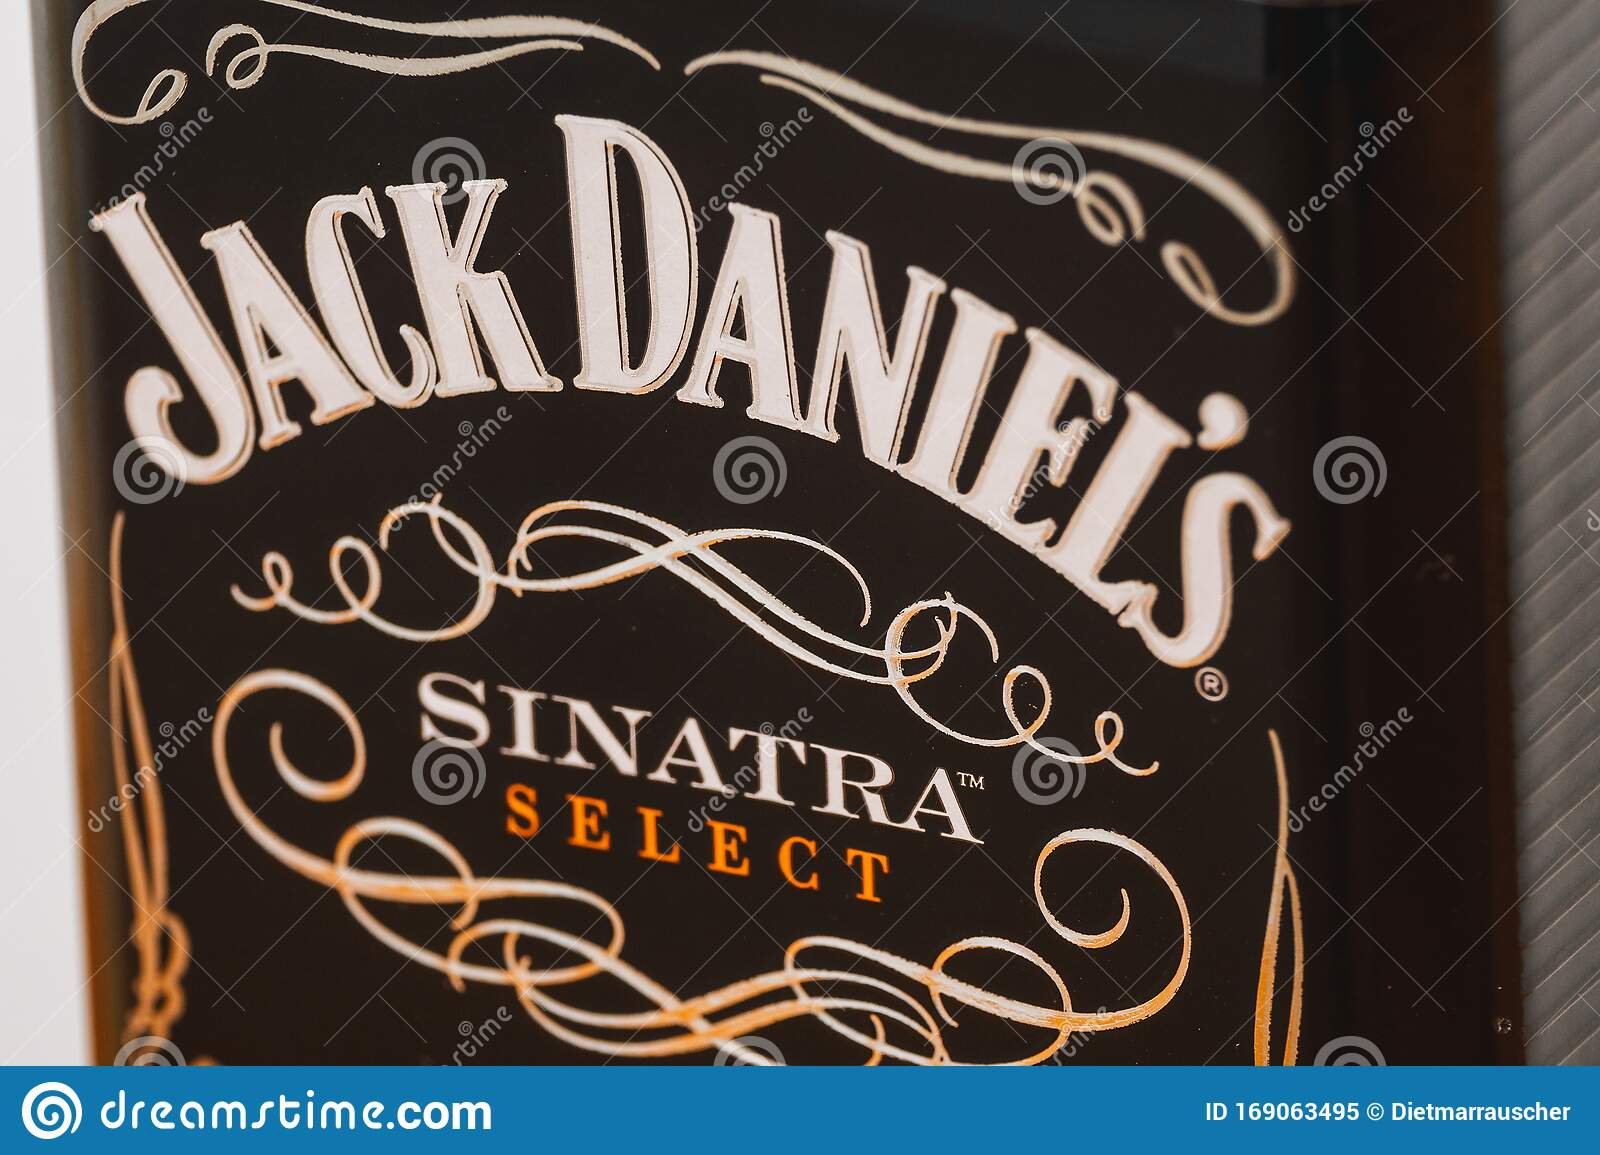 21,21 Whiskey Label Photos - Free & Royalty-Free Stock Photos from With Regard To Blank Jack Daniels Label Template